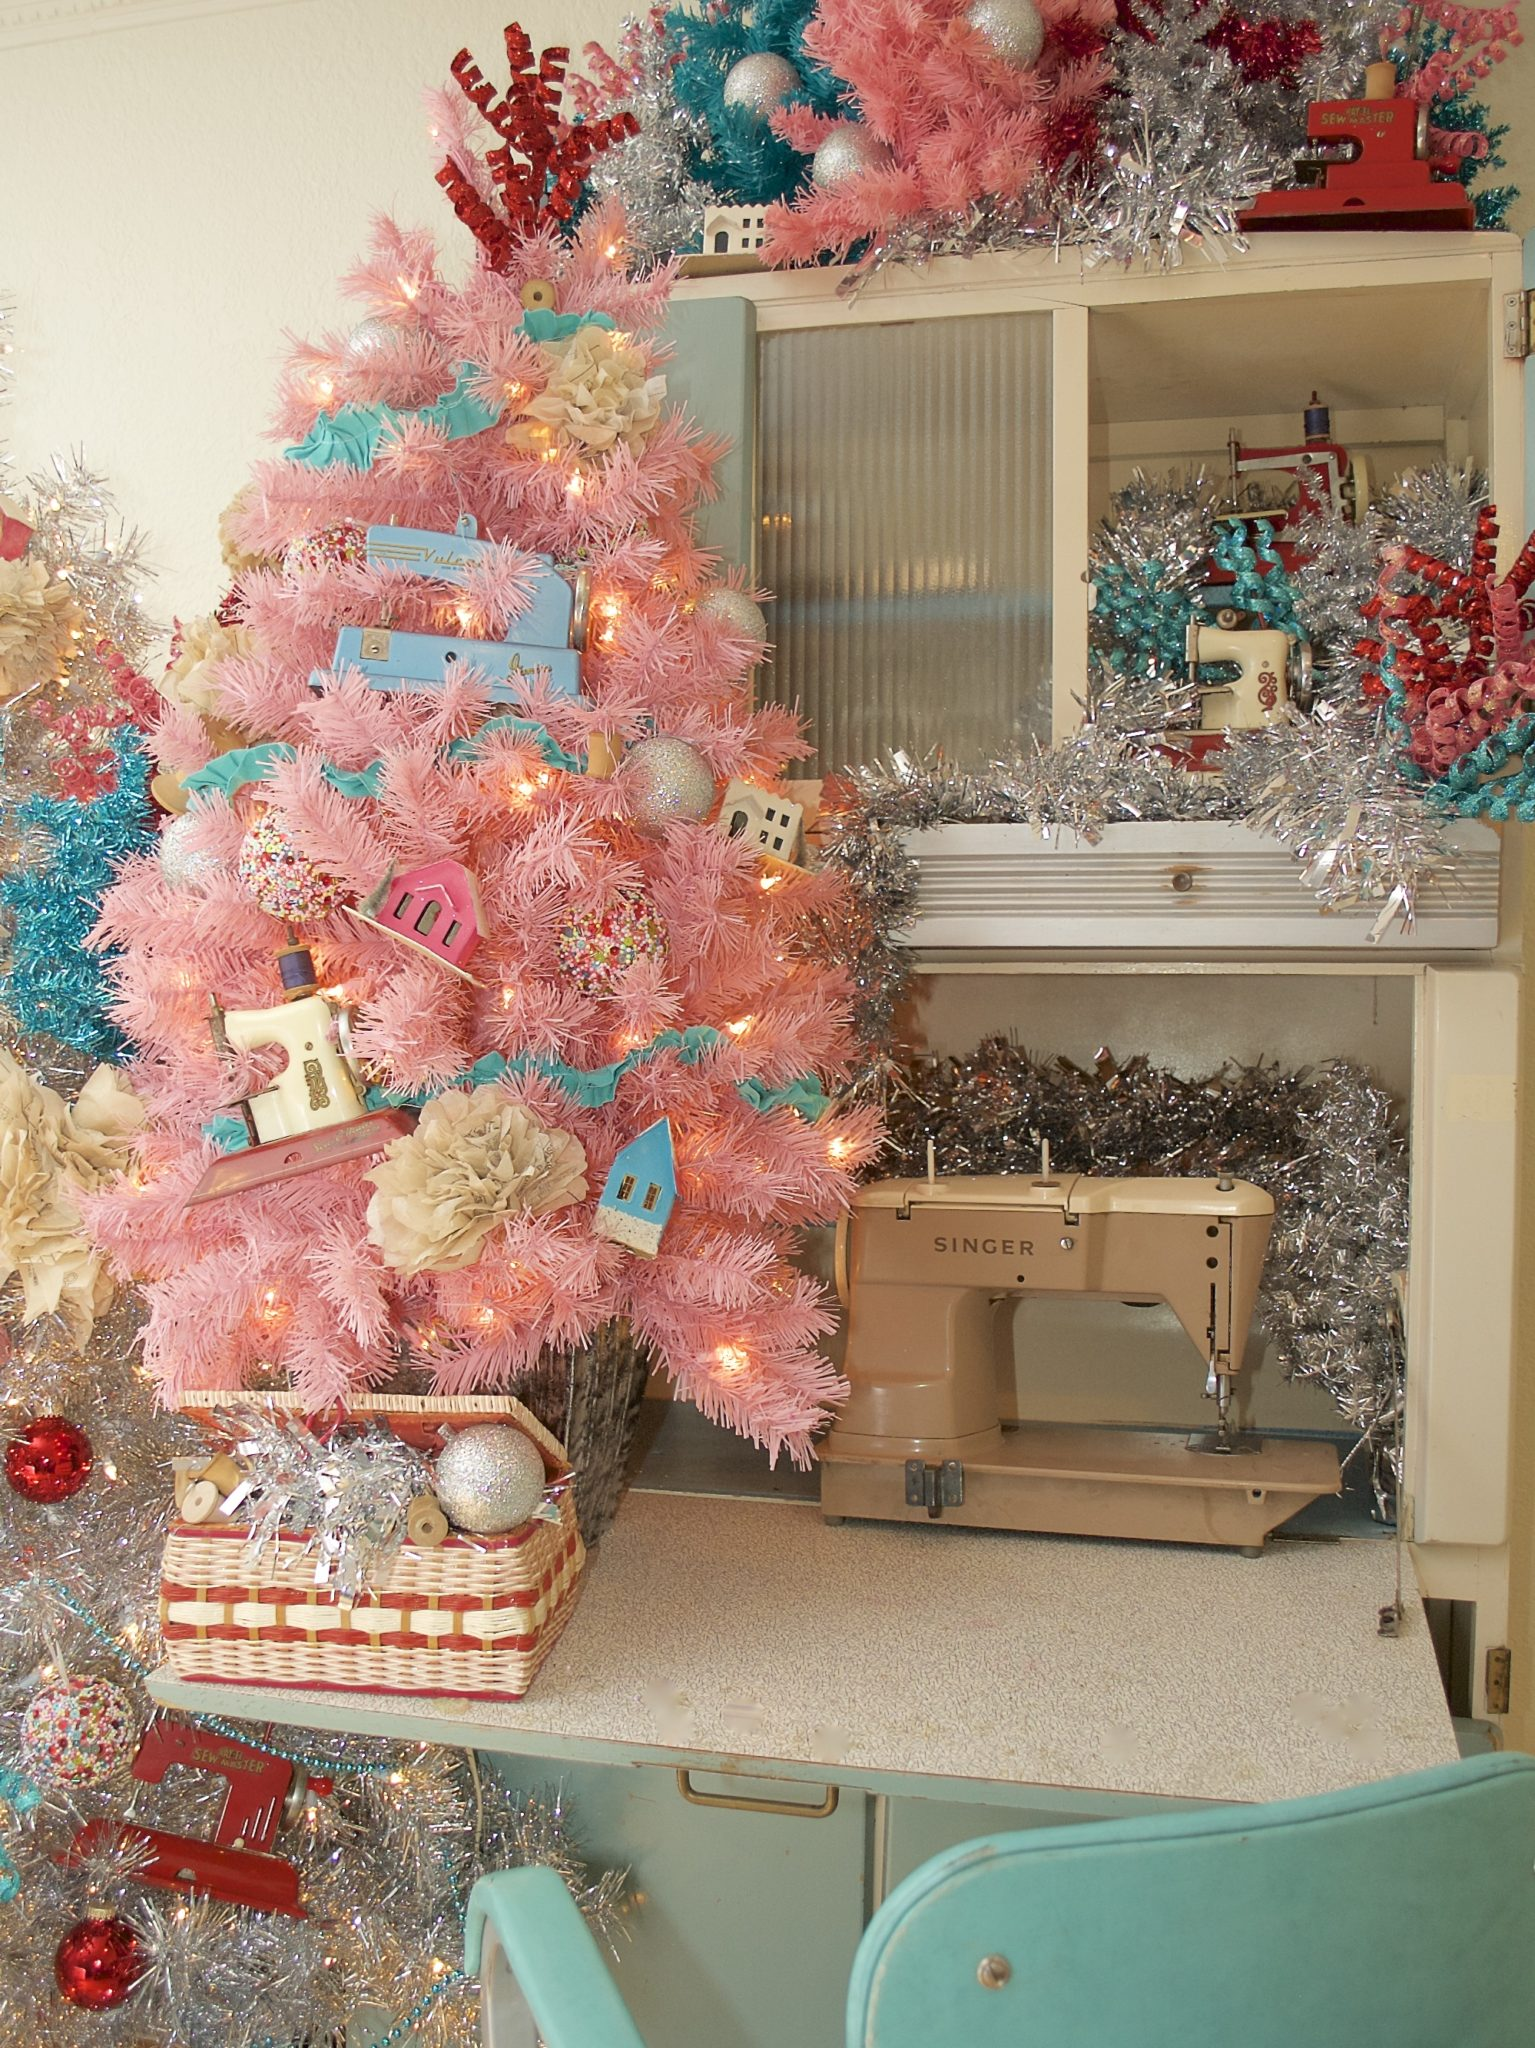 How to decorate a Christmas Tree with a Sewing theme.